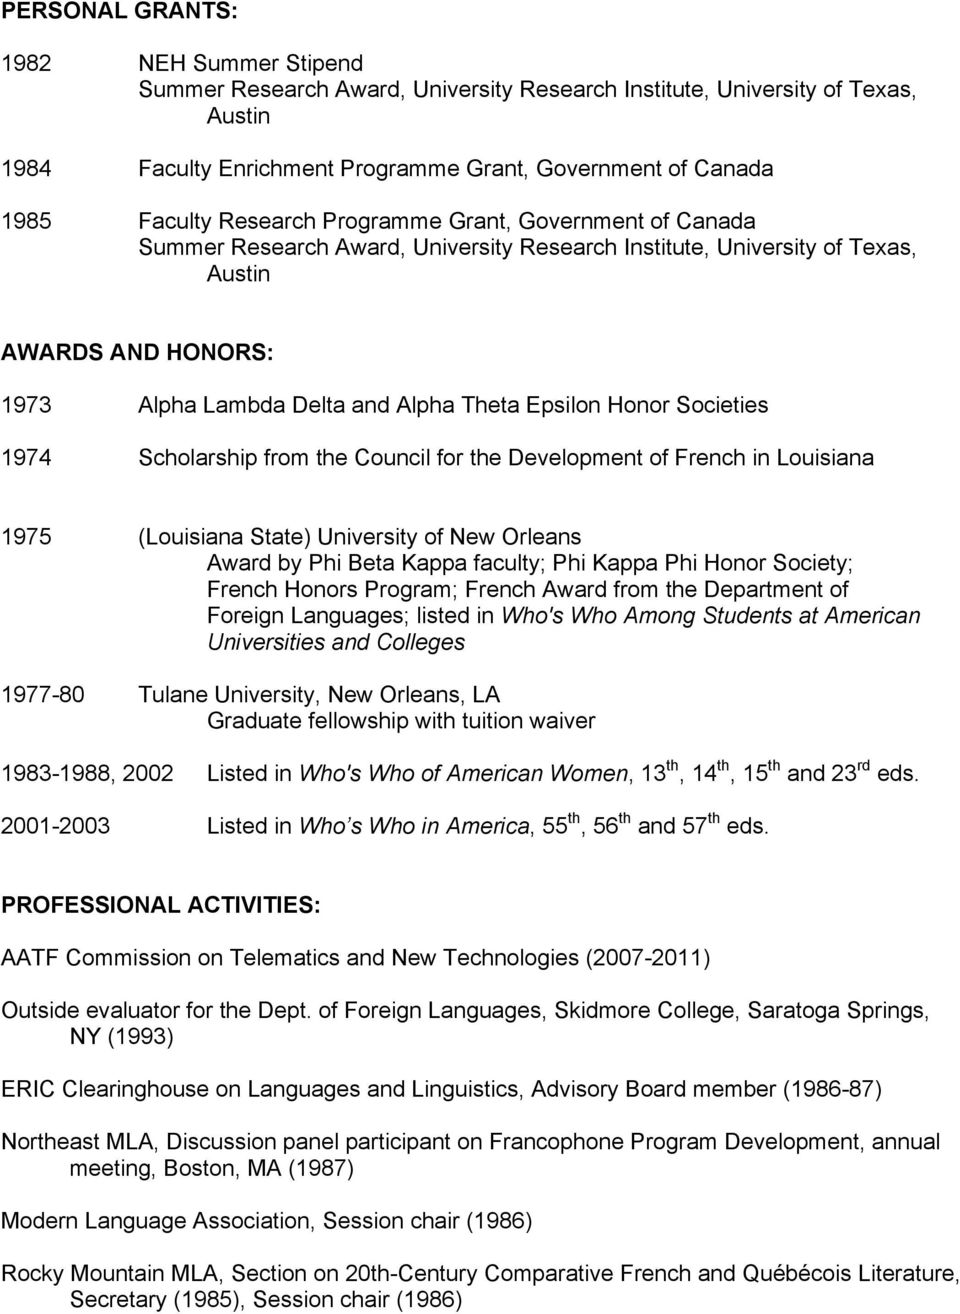 Honor Societies 1974 Scholarship from the Council for the Development of French in Louisiana 1975 (Louisiana State) University of New Orleans Award by Phi Beta Kappa faculty; Phi Kappa Phi Honor